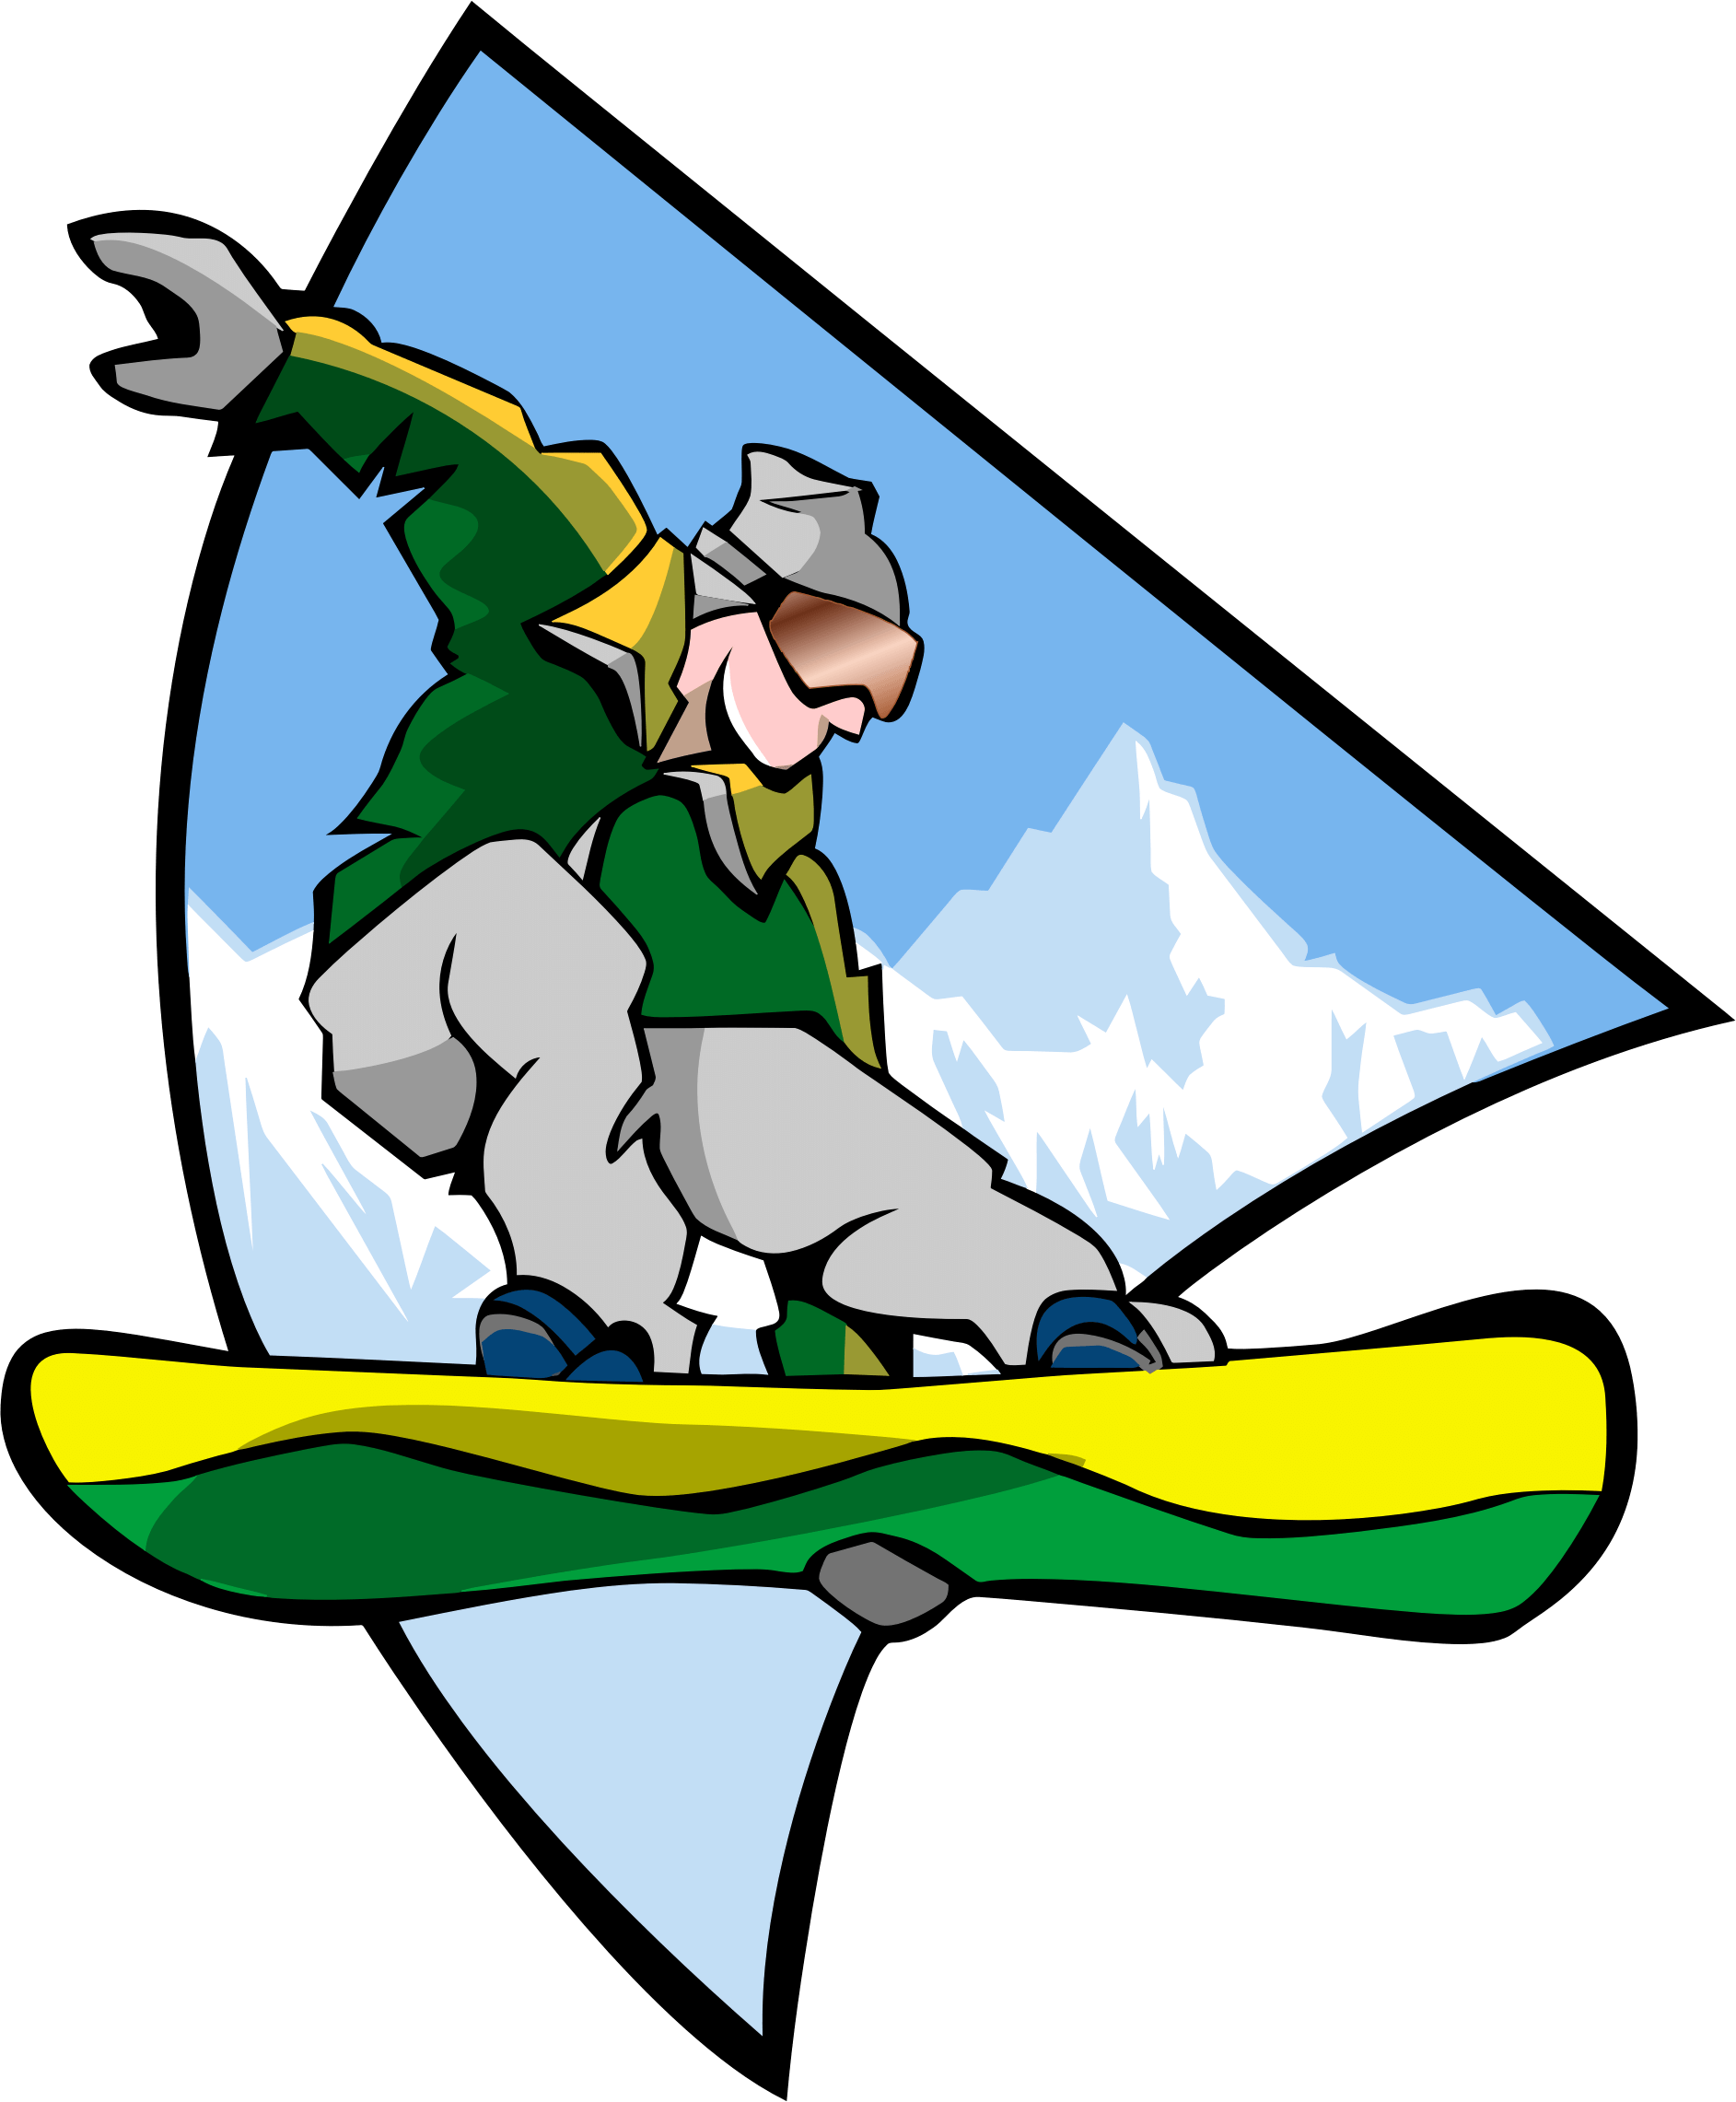 Collection of Snowboarding clipart | Free download best